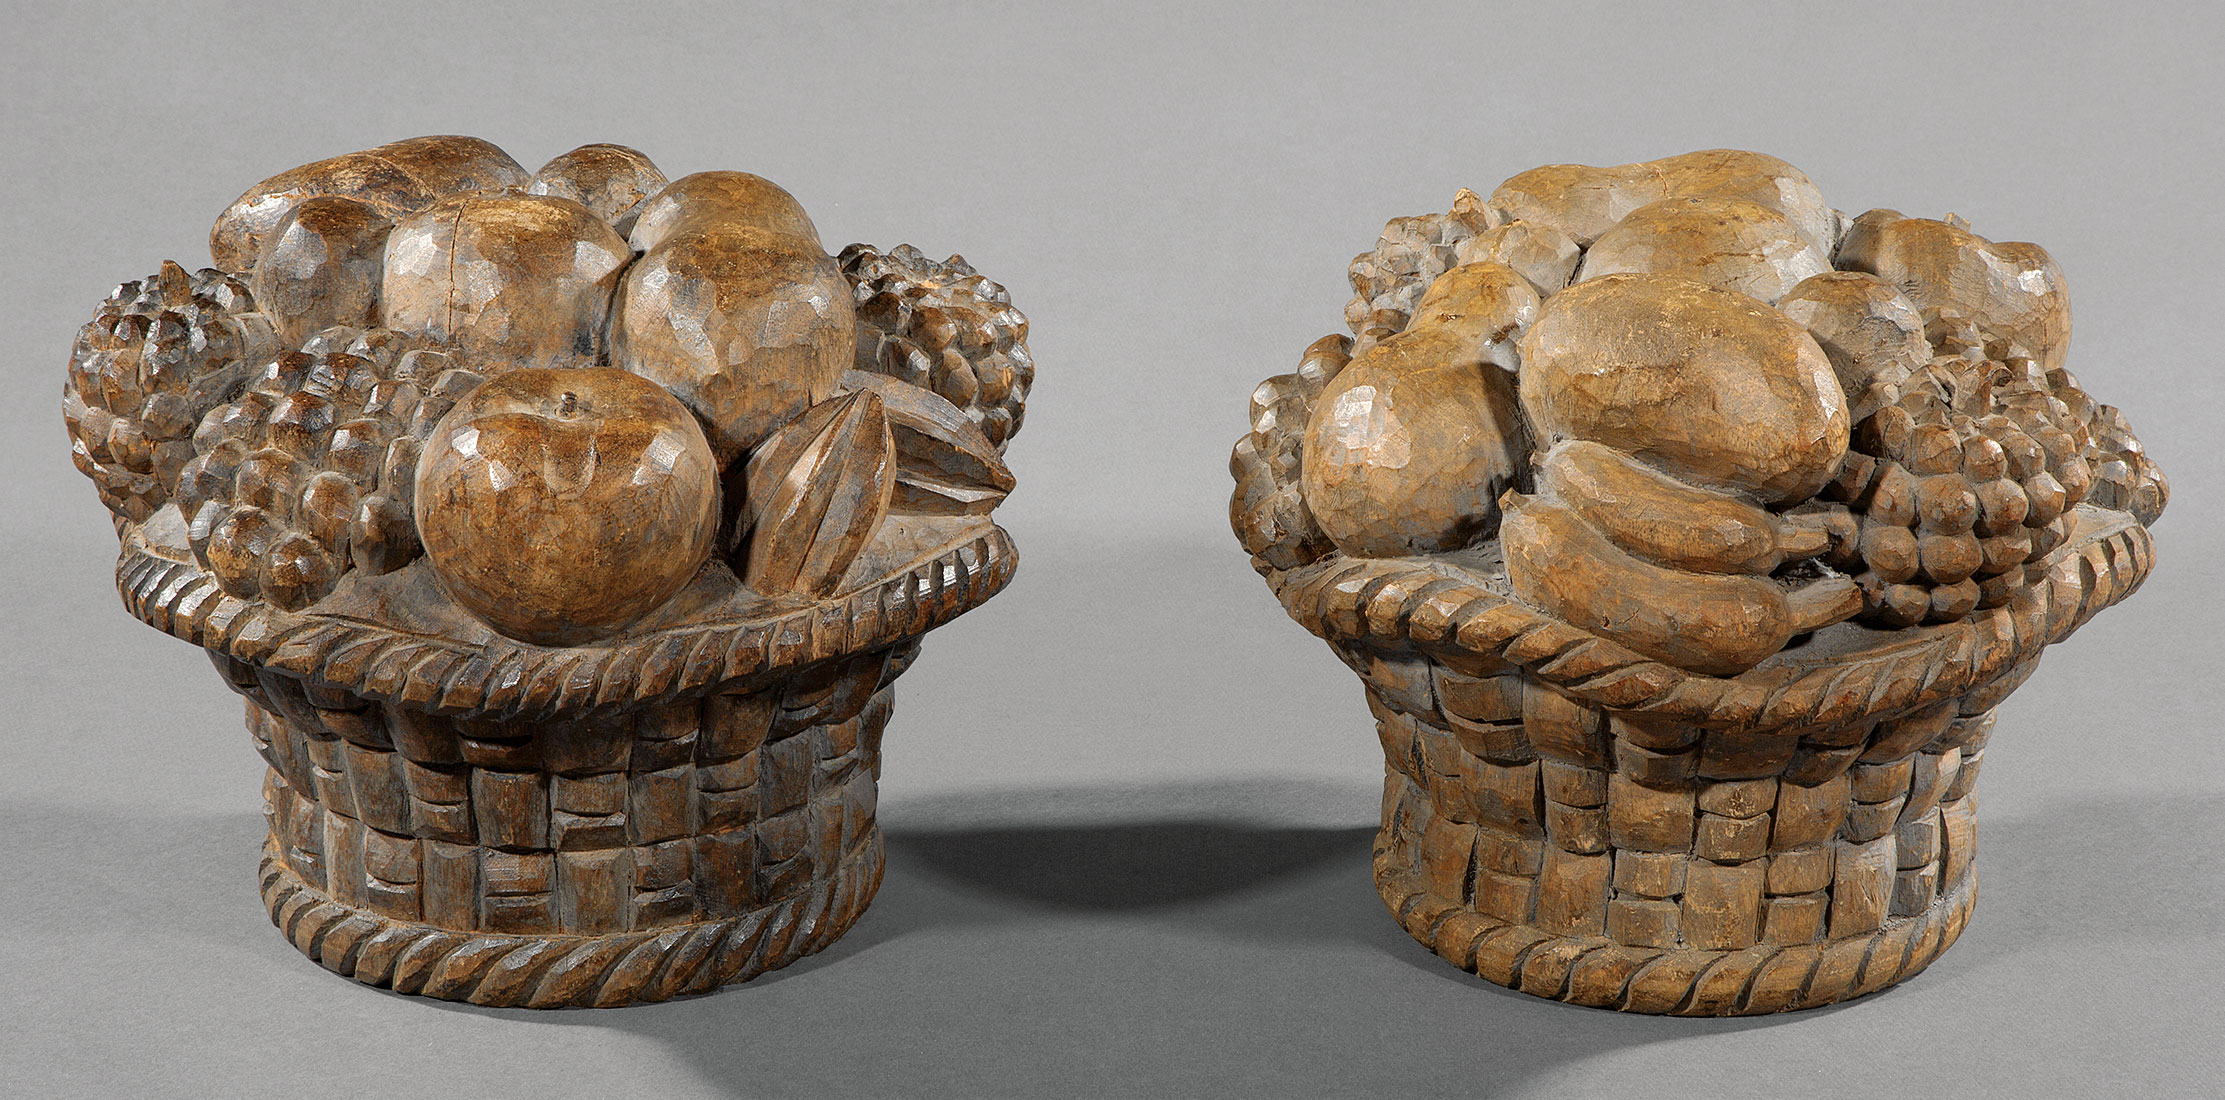 Lot 1084 - Pair of Carved Pine Fruit Baskets , 19th c., h. 9 1/2 in., dia. 11 in